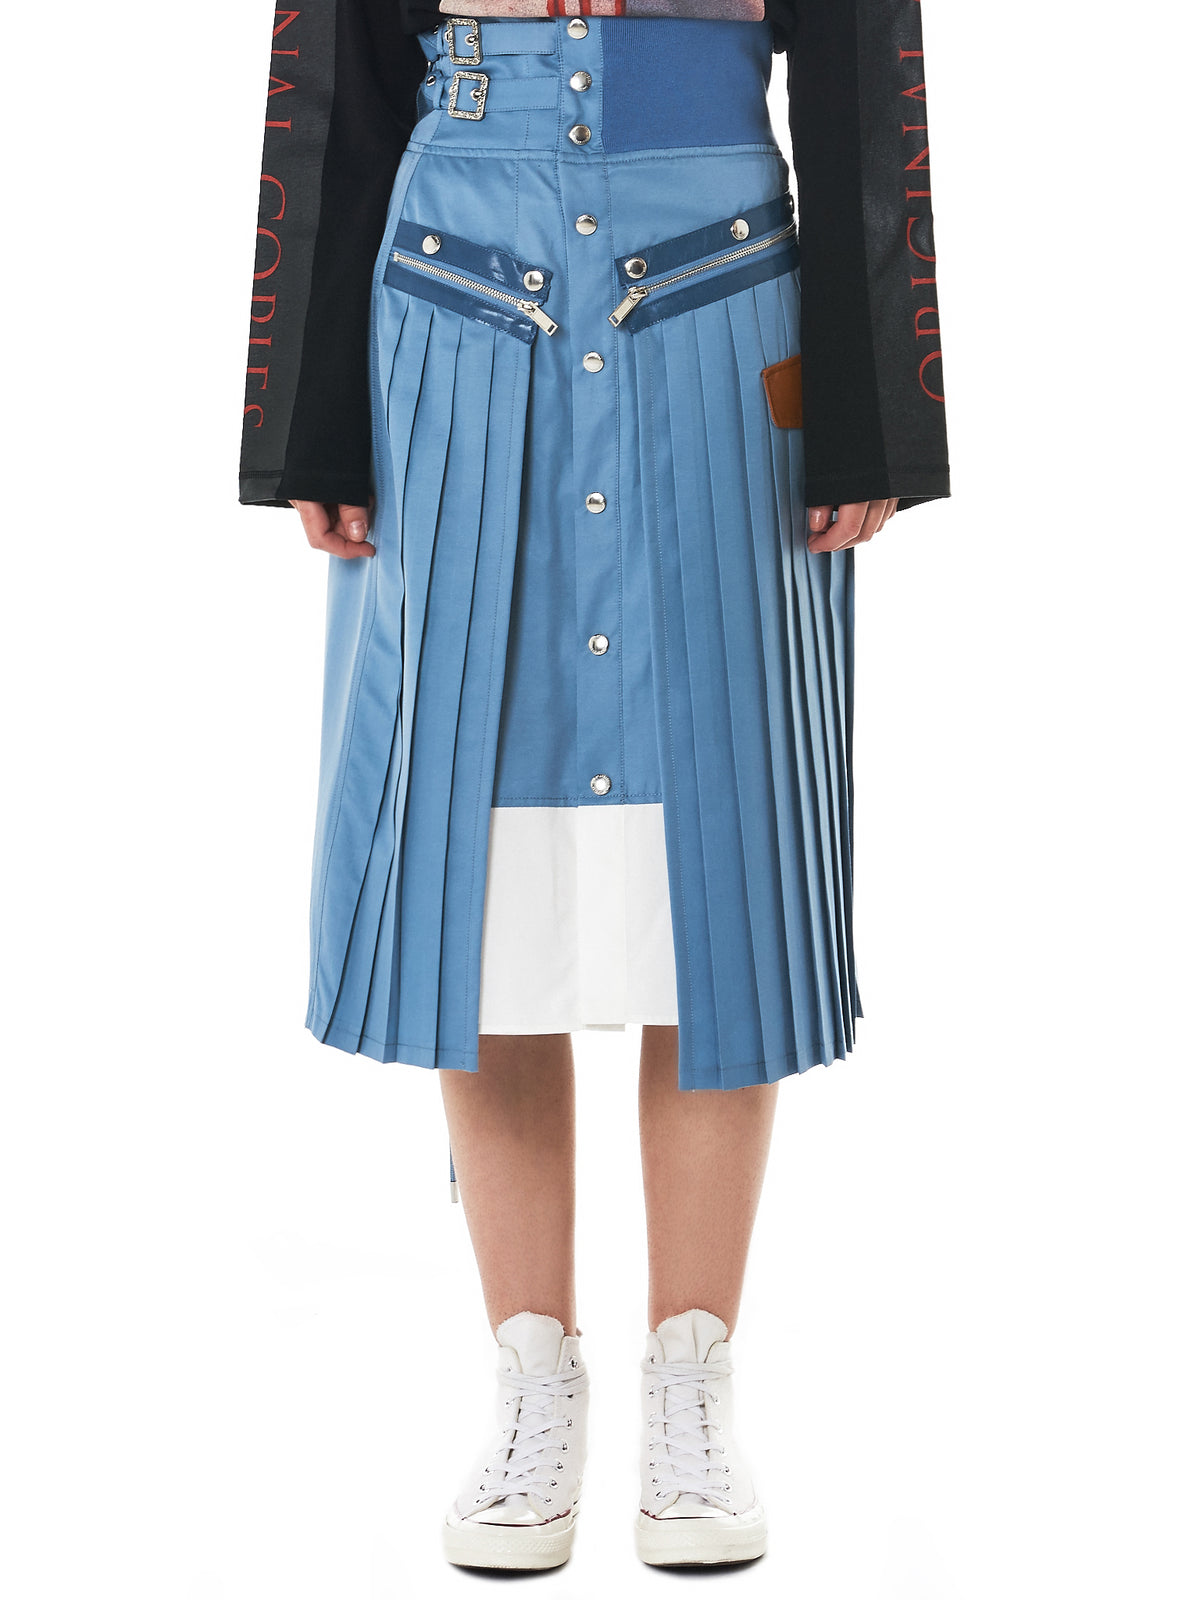 Knife-Pleated Buttoned Skirt (CDW-18S-0703-BLUE)